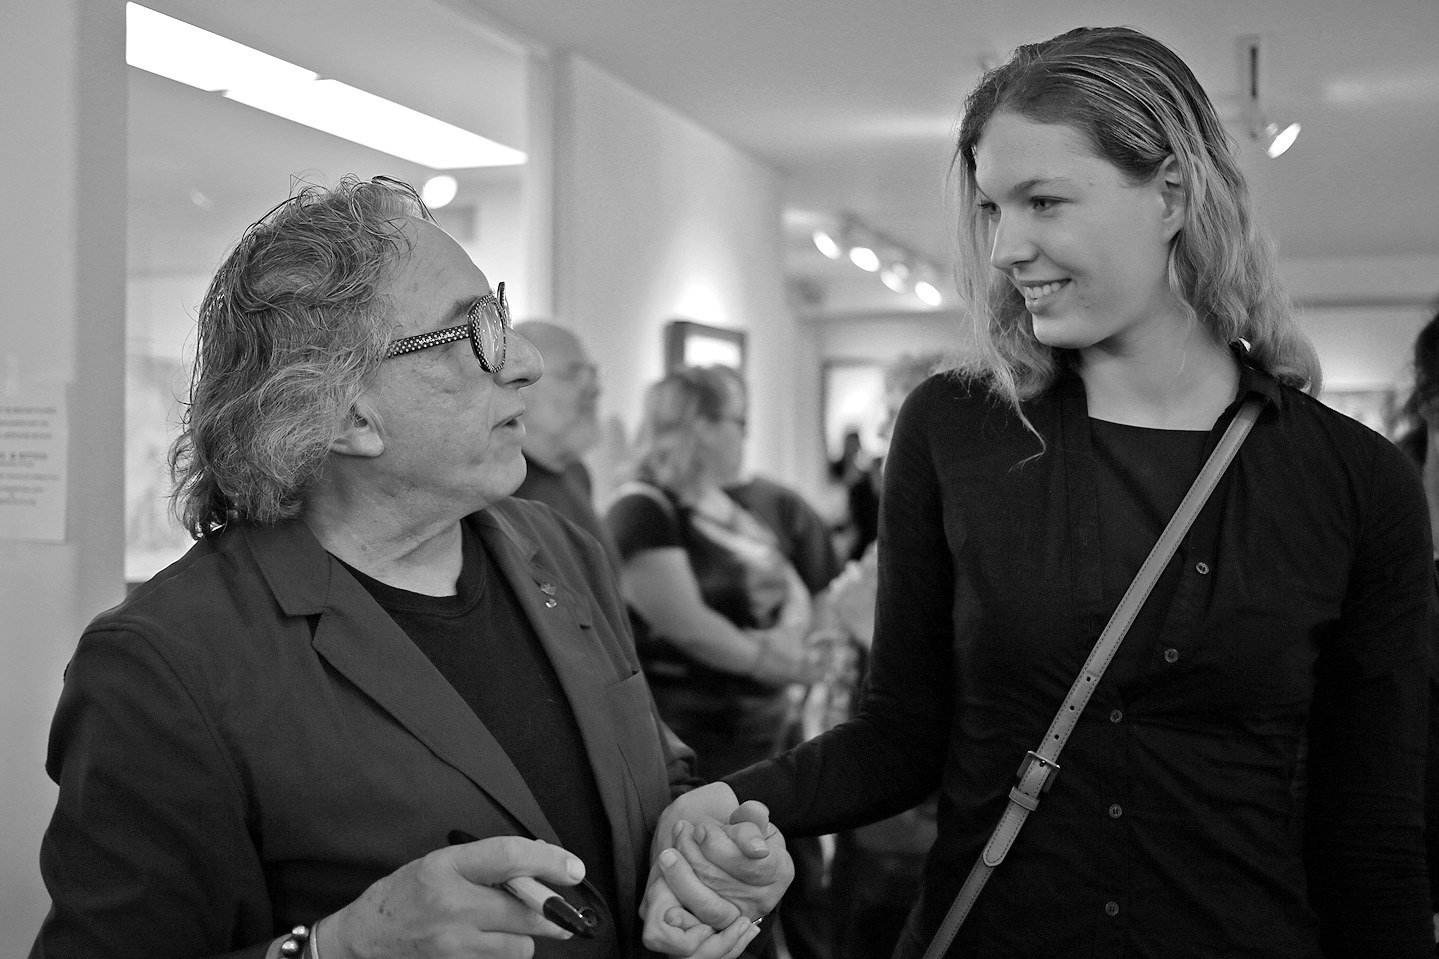 photo Artist and muse Melissa Mourer Ordener with photographer Joel-Peter Witkin telechargement gratuit